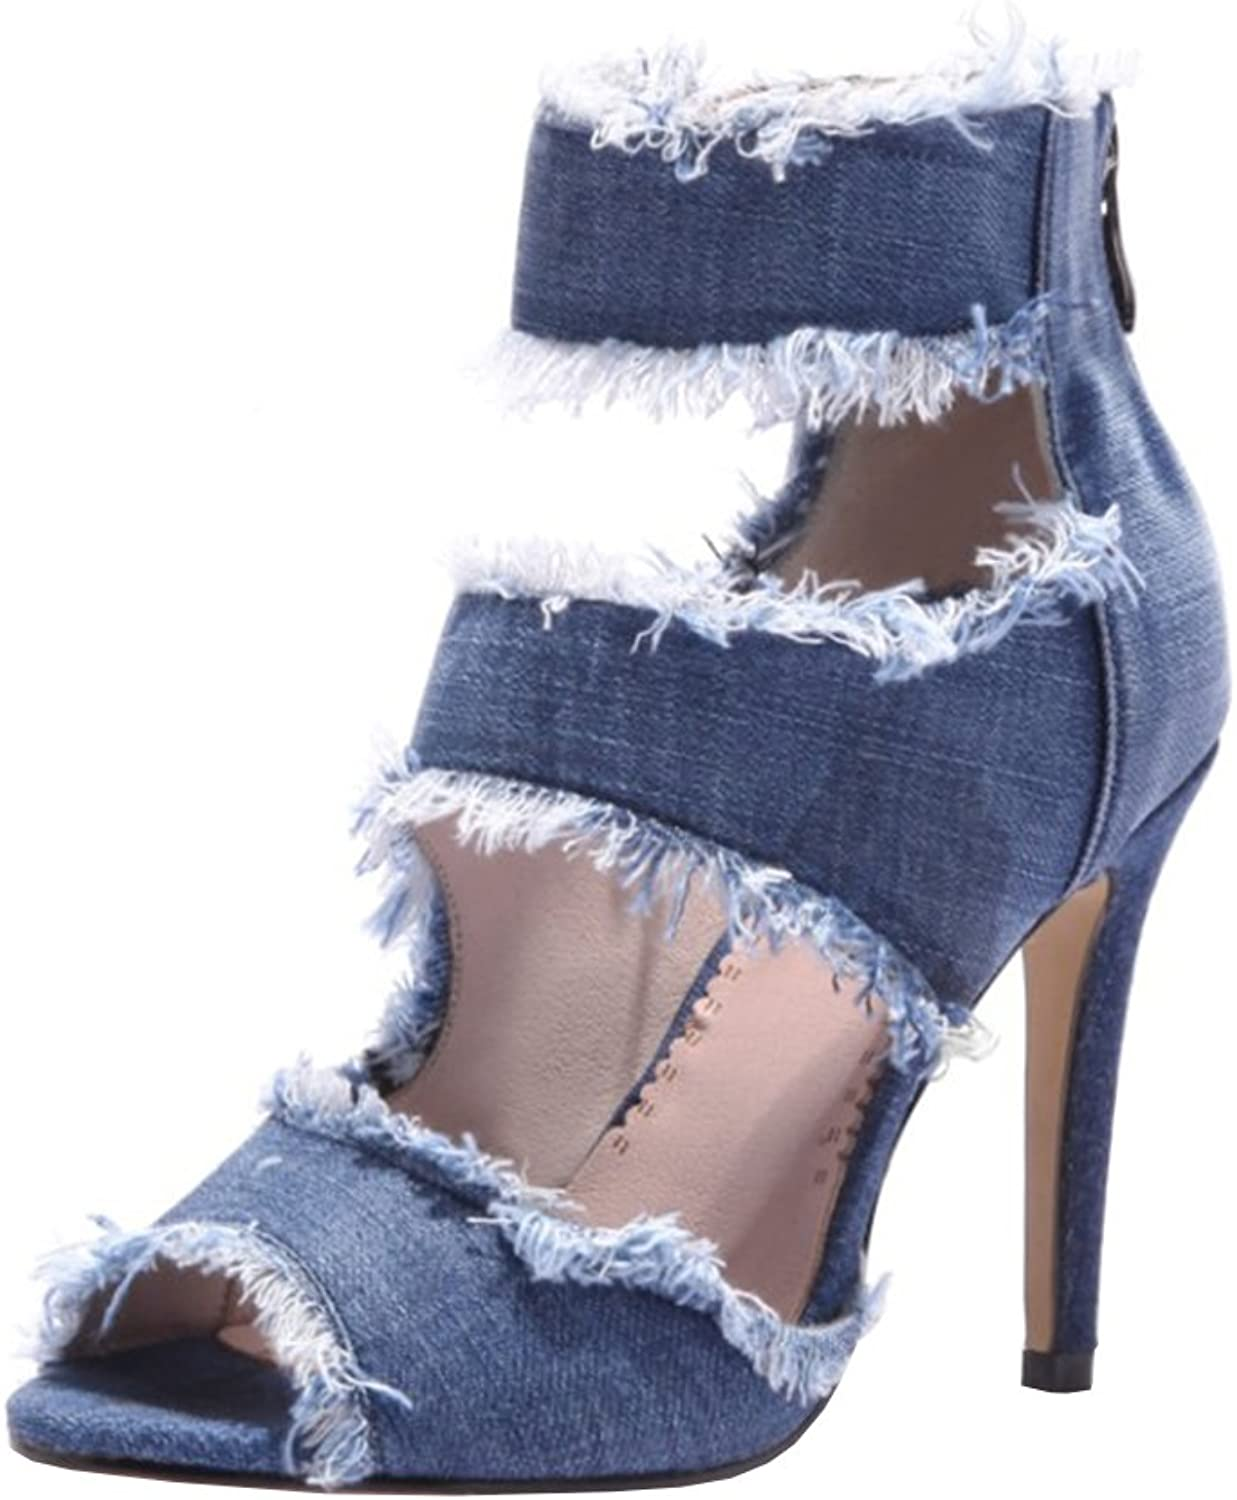 Agodor Womens High Heels Open Toe Ankle Strap Pumps with Zip Denim Stiletto Sandals Summer shoes